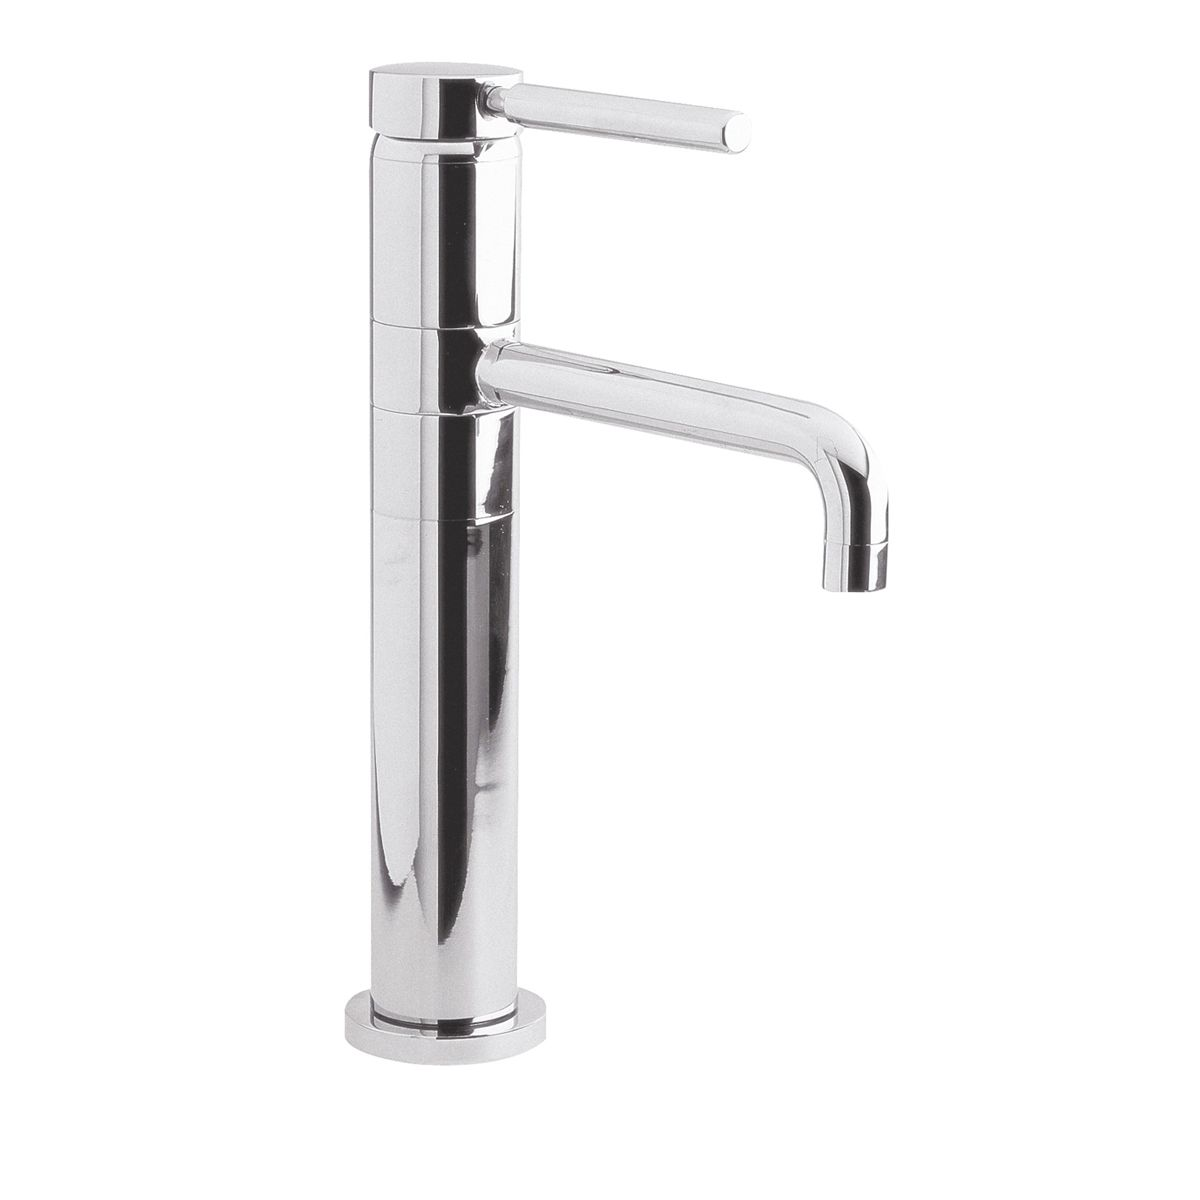 Hudson Reed Tec Single Lever High Rise Mono Basin Mixer Tap